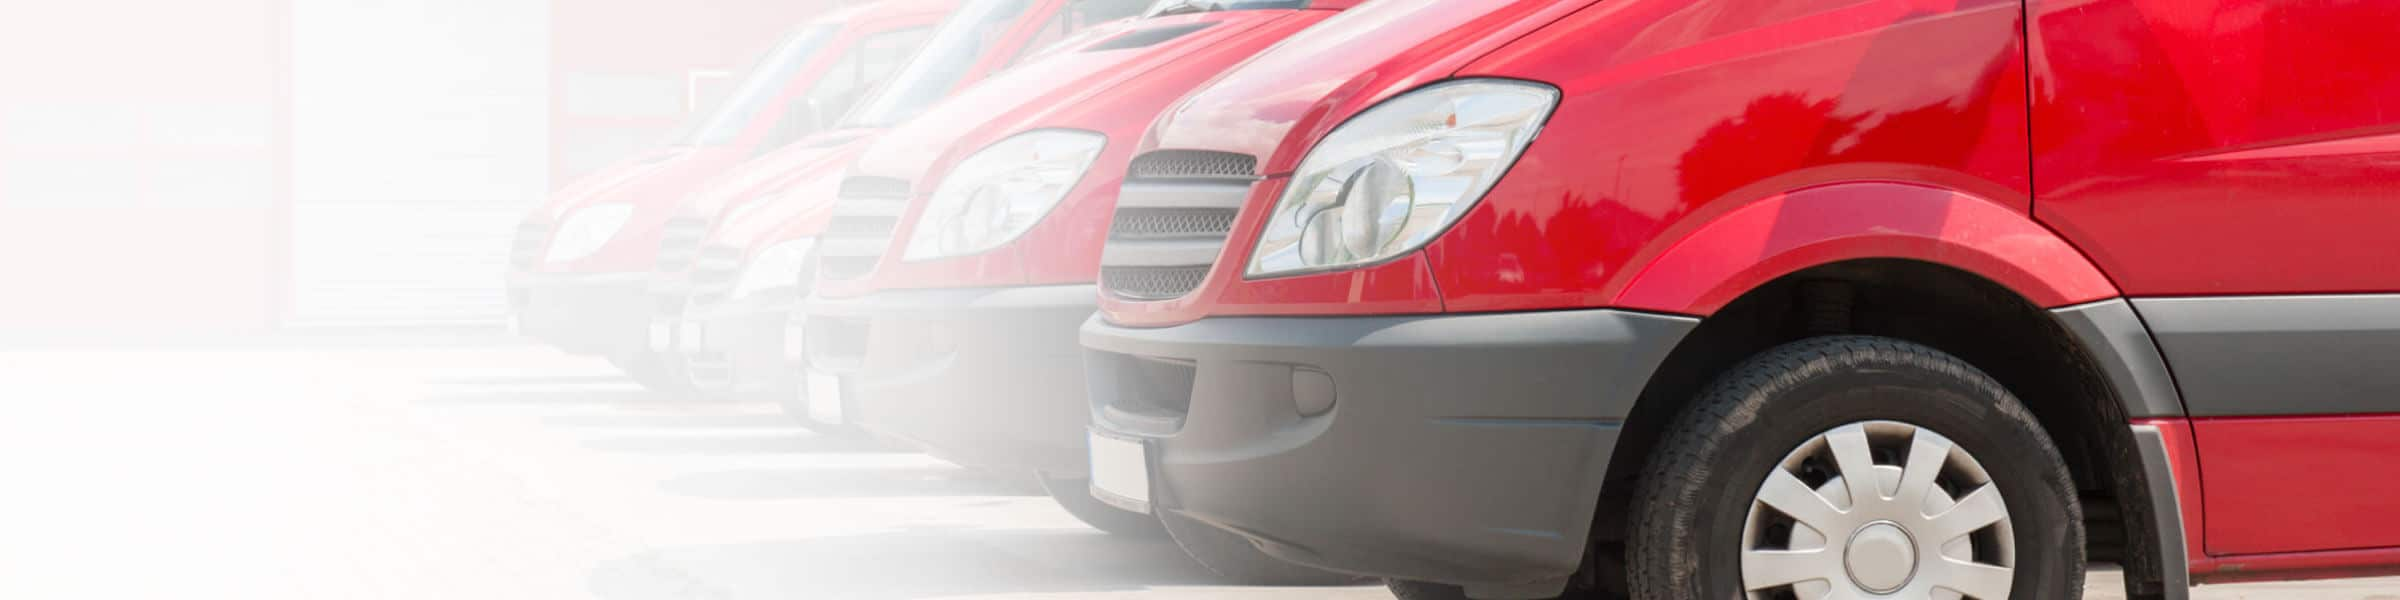 Commercial Vehicle Insurance Policies